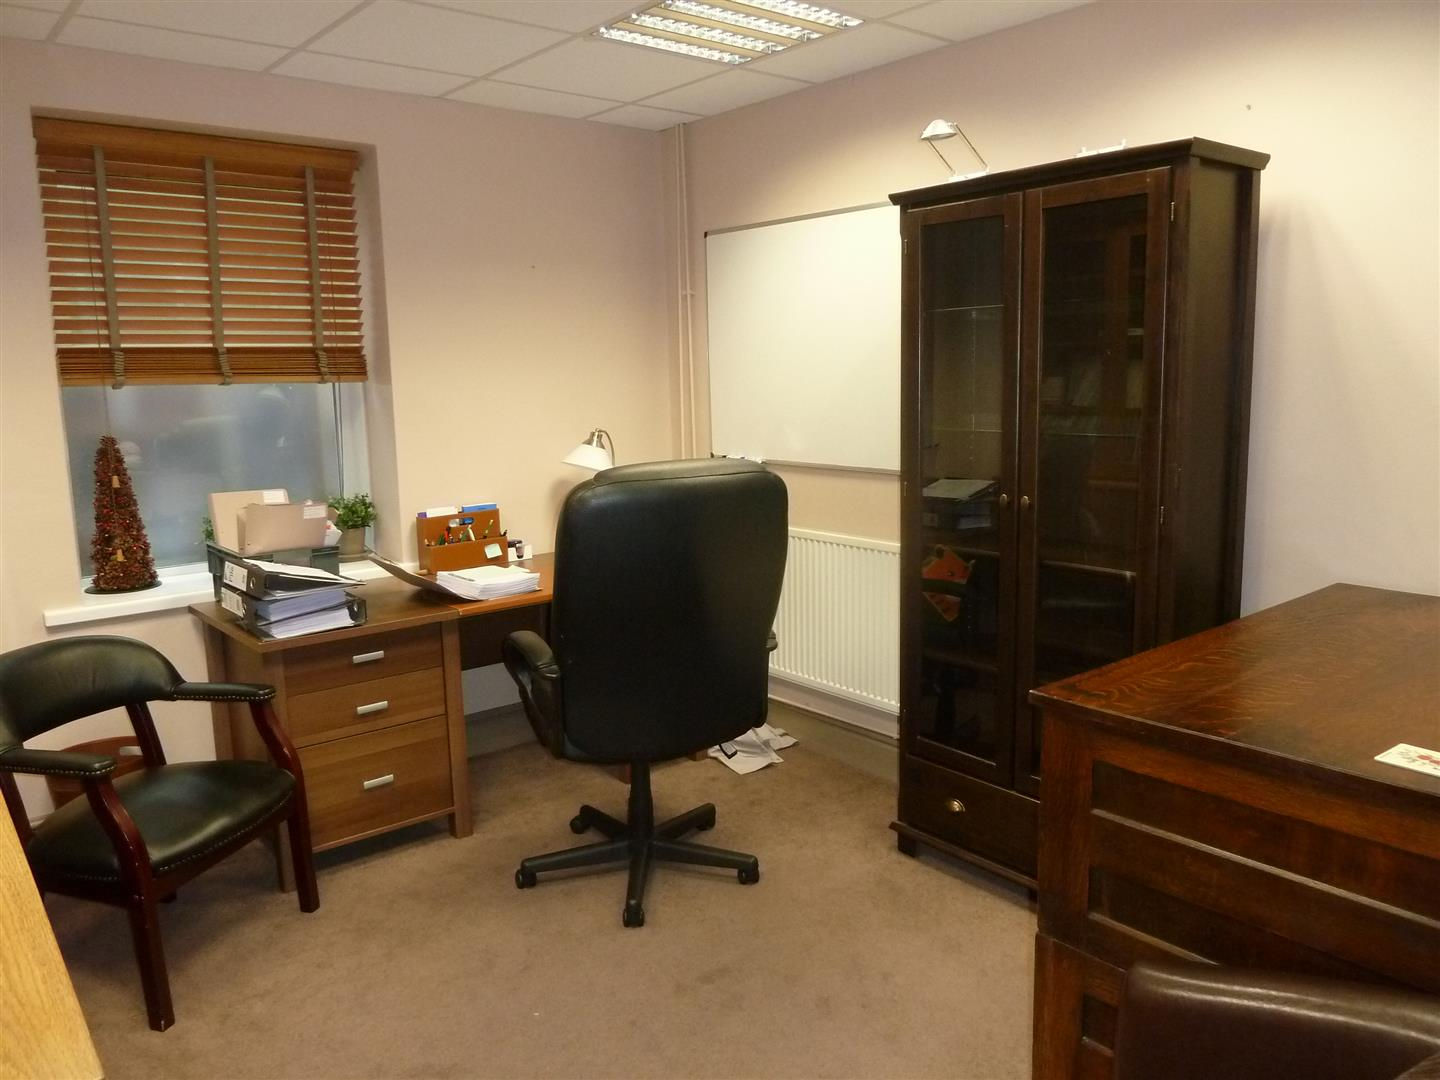 CONSULTING ROOM/OFFICE 2